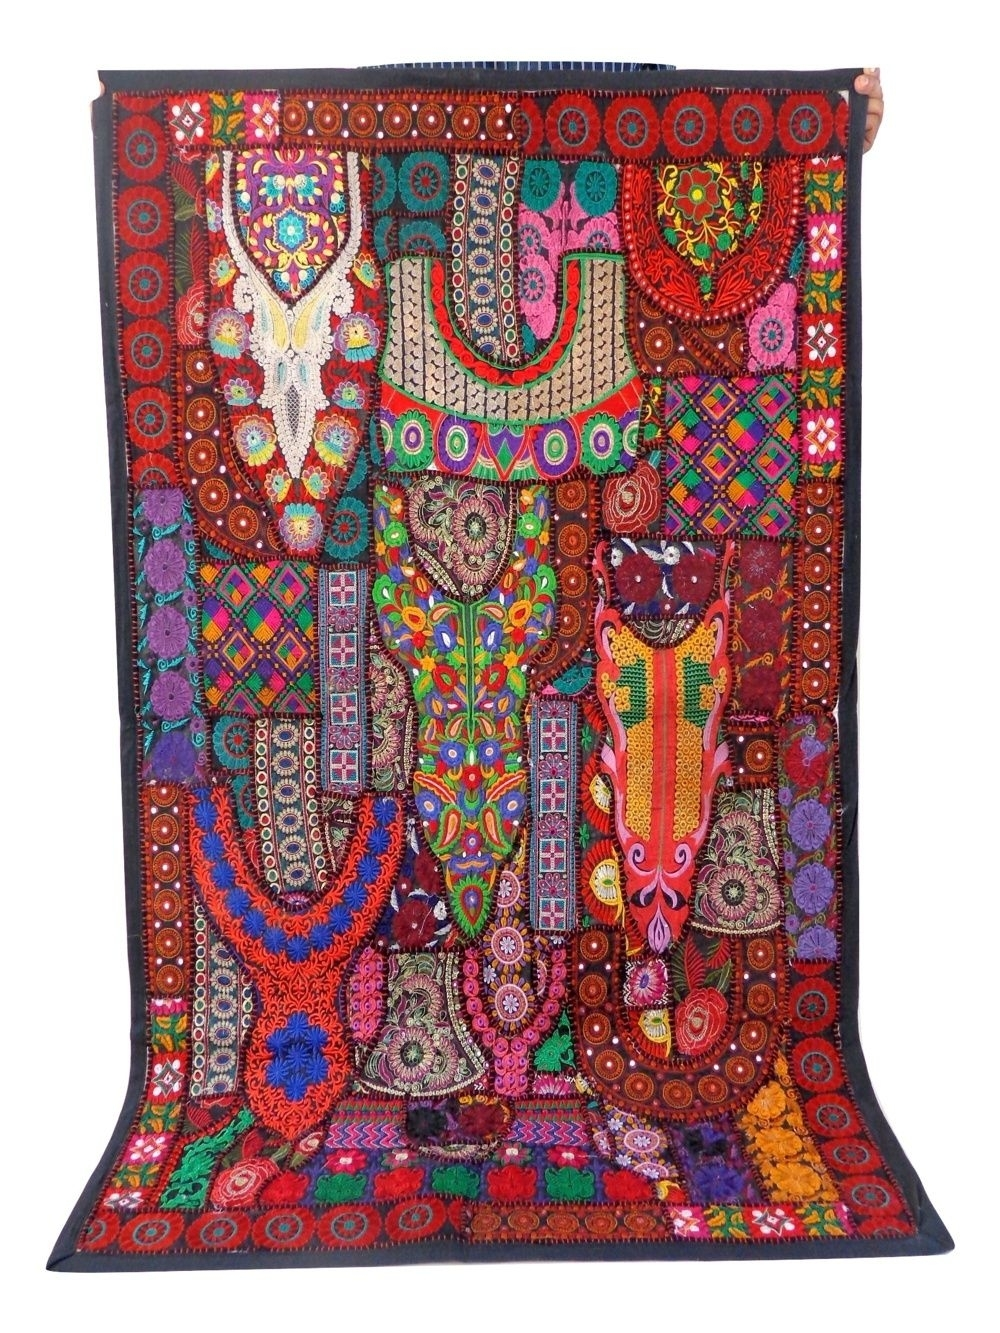 Designer Vintage Embroidered Patchwork Tapestry – Boho Hippie Wall Inside Most Popular Indian Fabric Art Wall Hangings (View 5 of 15)